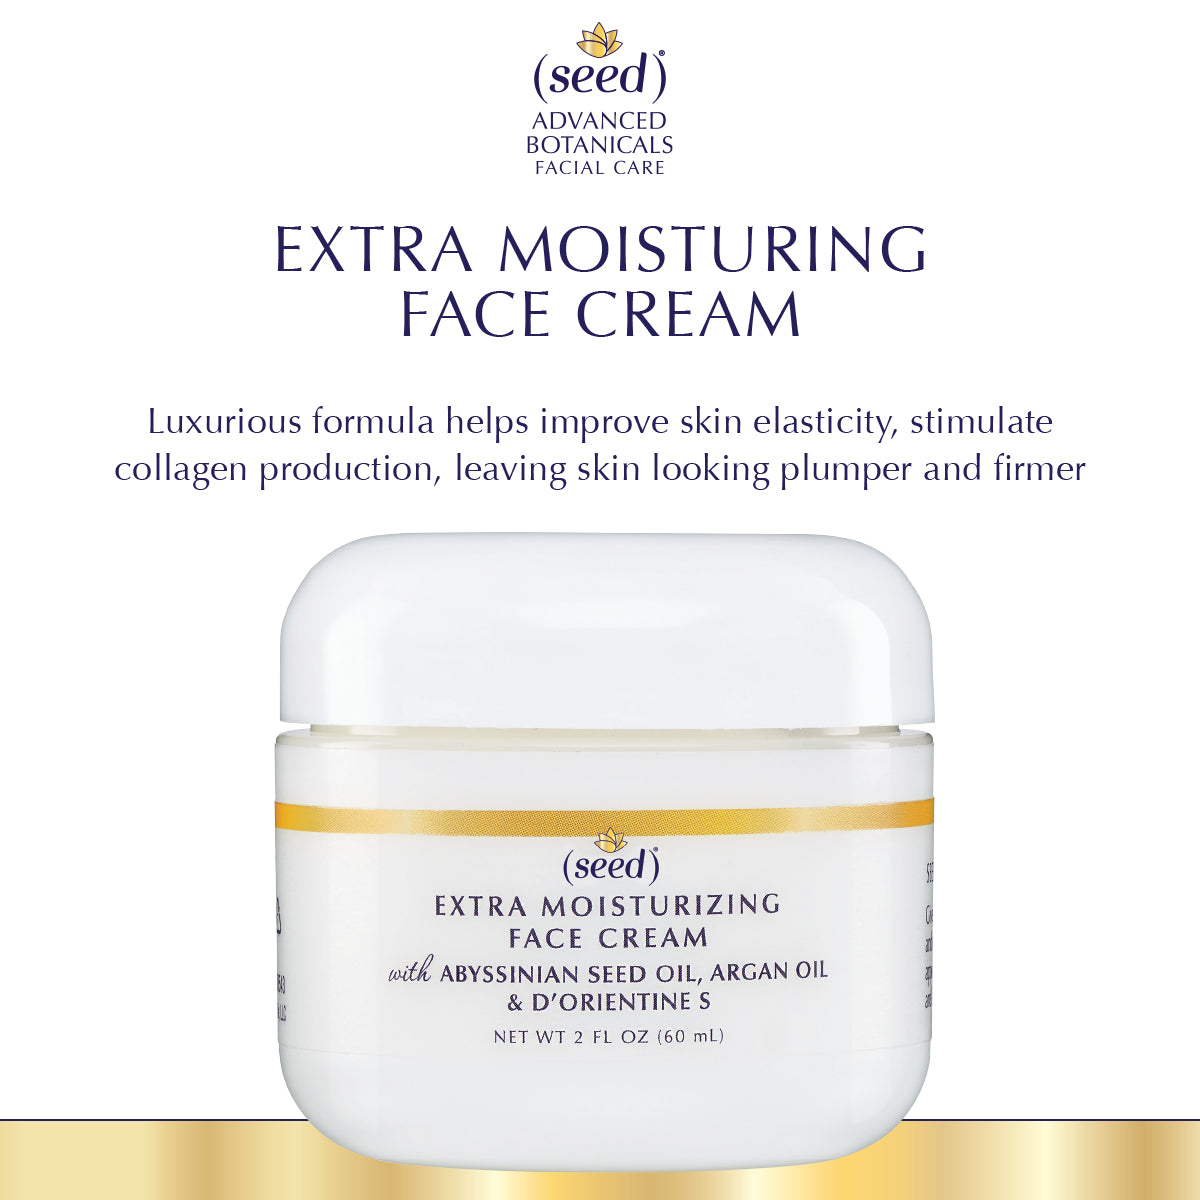 Seed Advanced Botanicals Extra Moisturizing Face Cream benefits